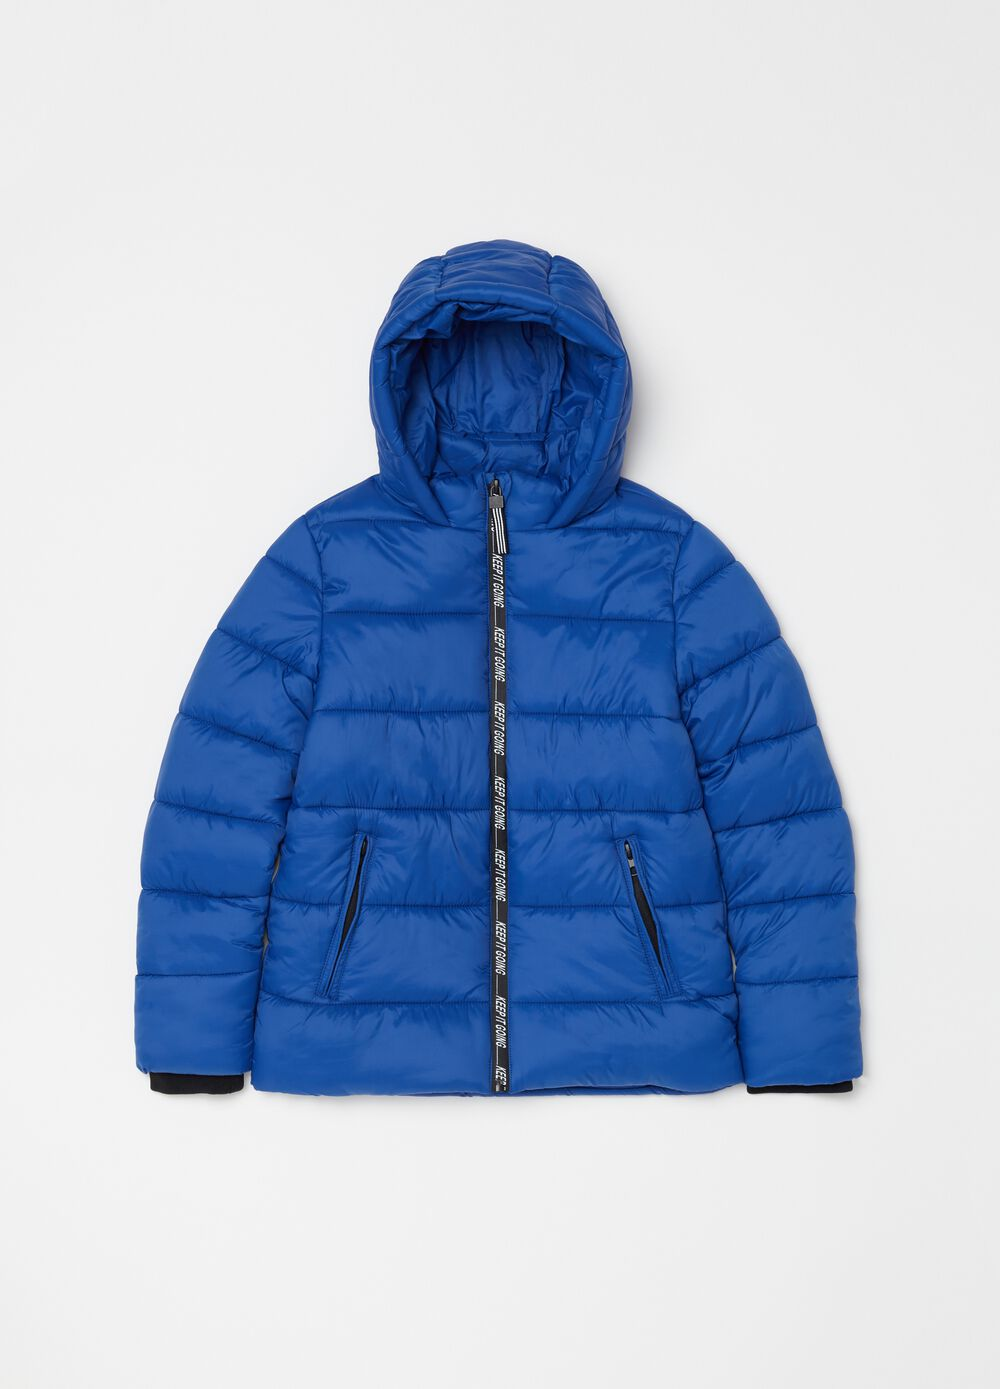 Padded jacket with fleece and zipper